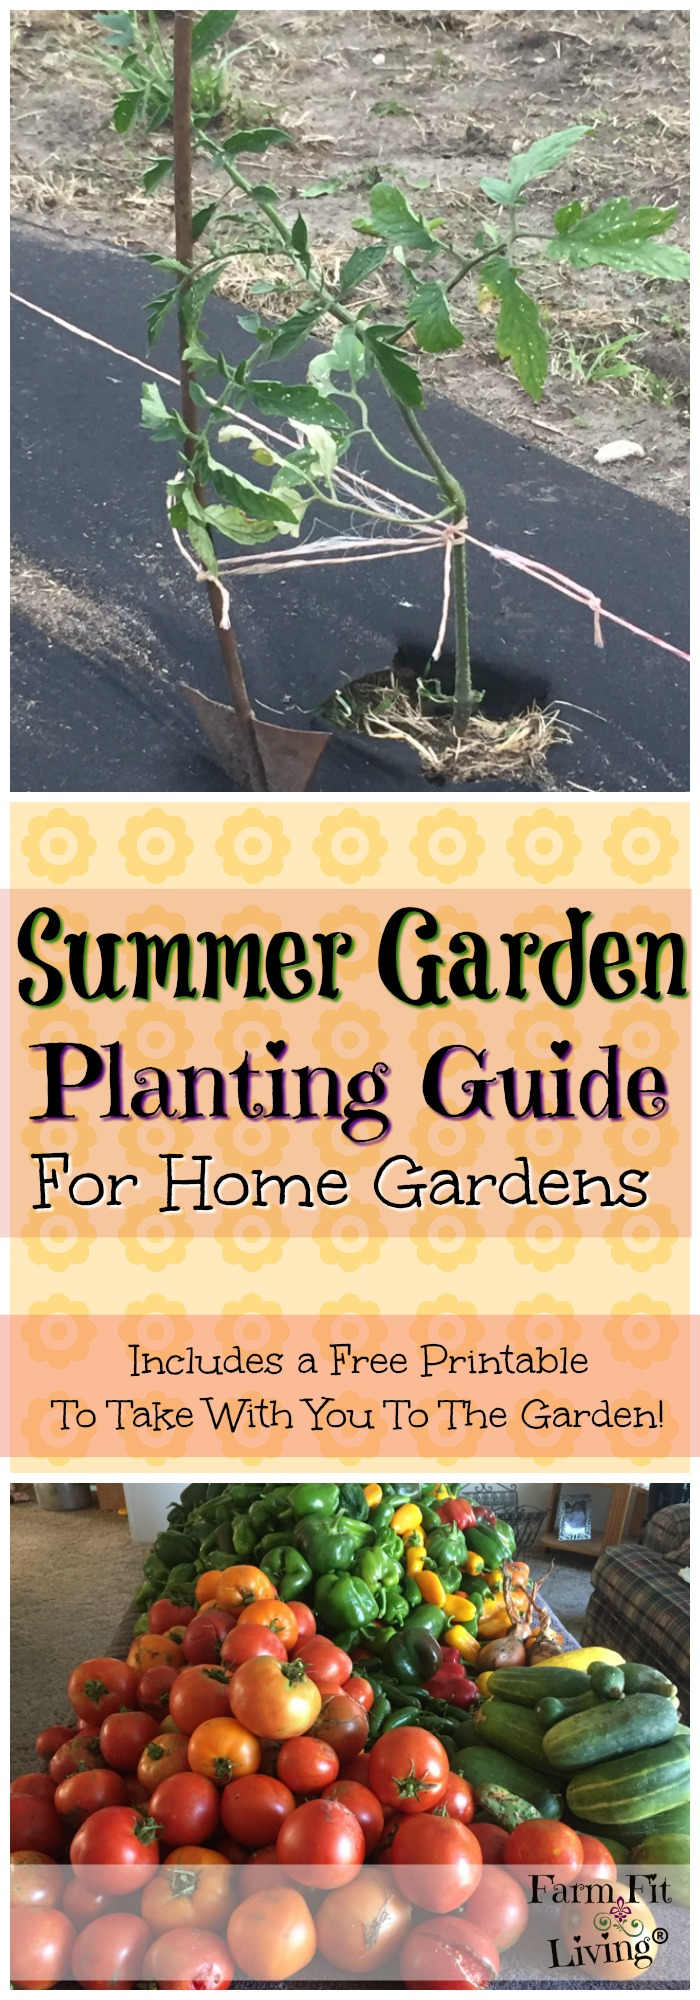 This summer garden planting guide will help you plant summer garden crops, such as tomatoes, peppers and watermelon? FREE printable included.